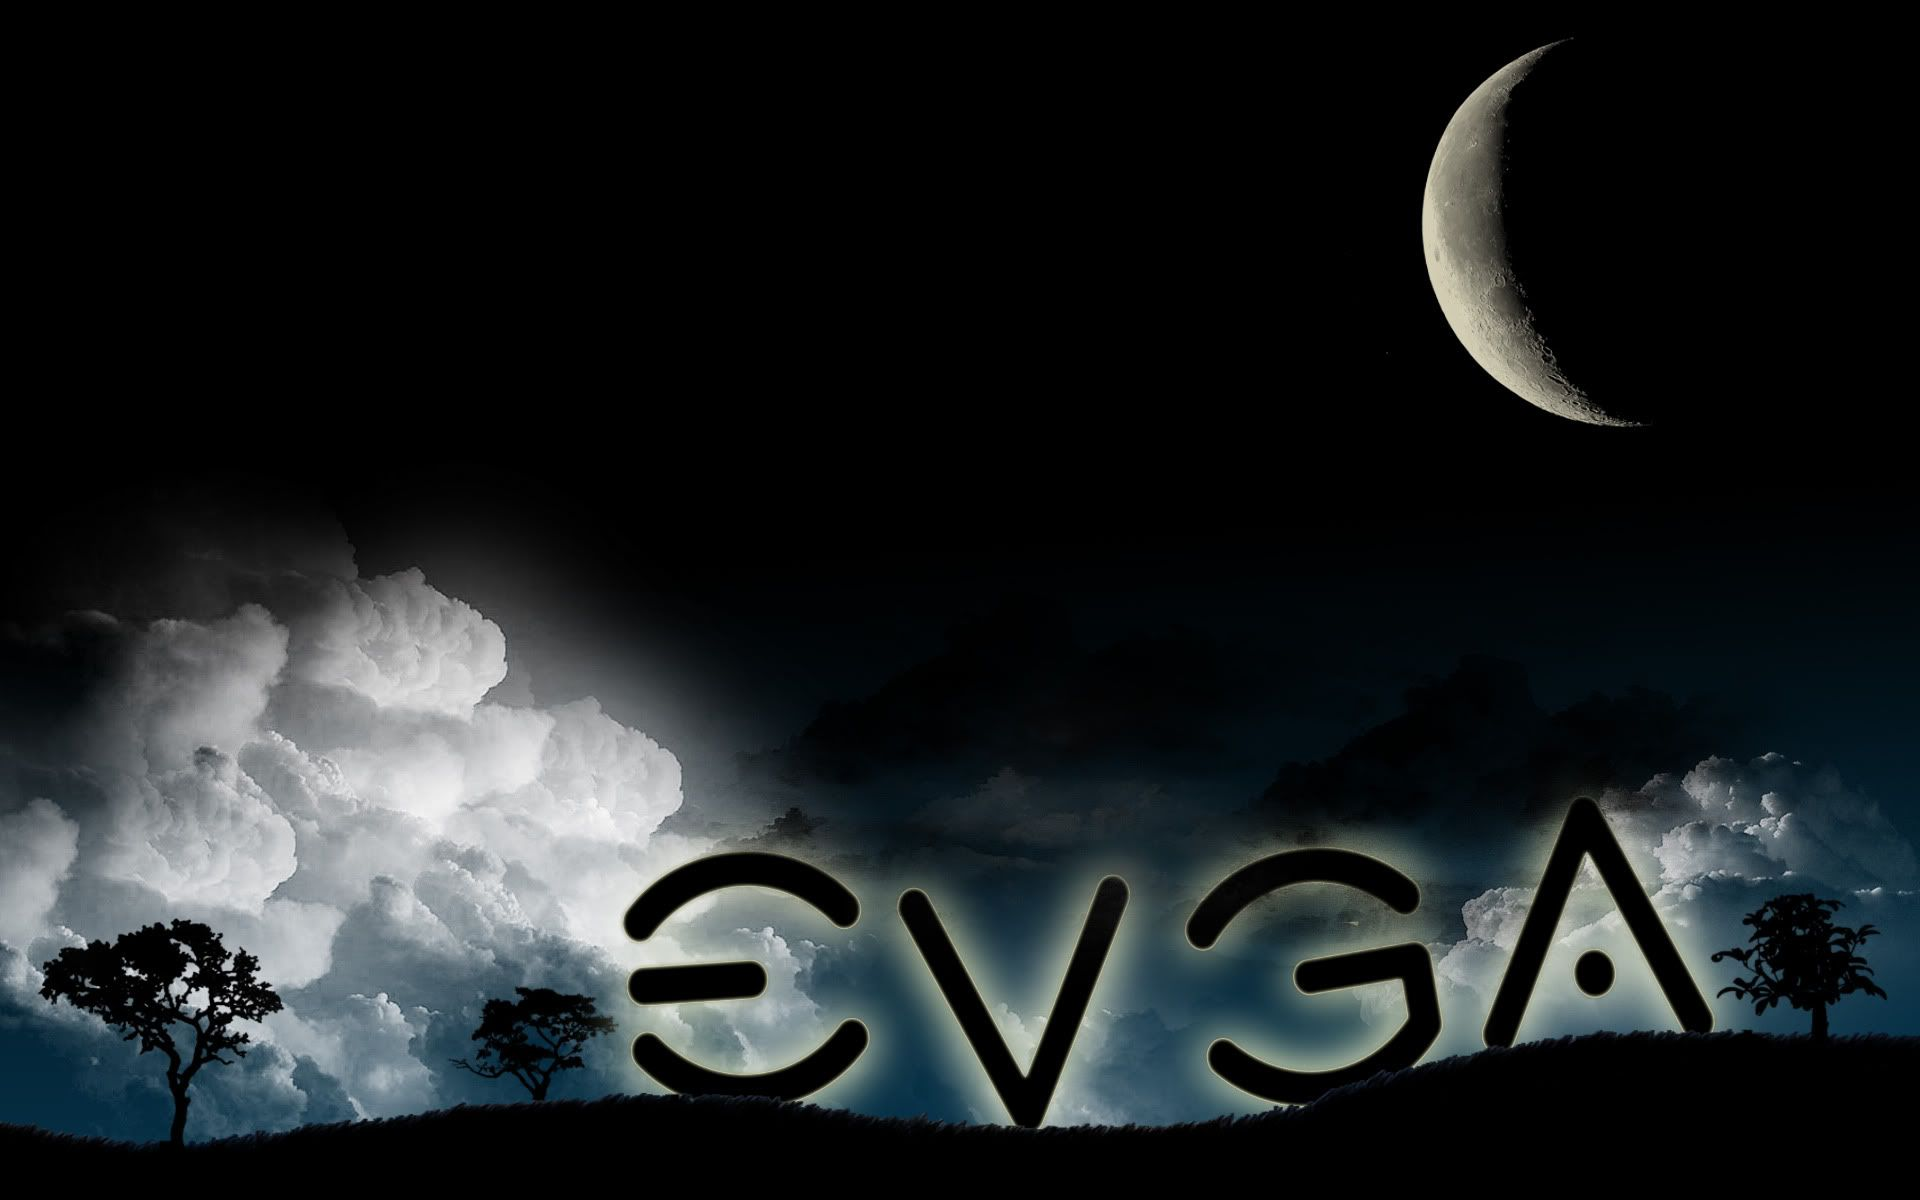 wallpaper.wiki-HD-Free-Wallpapers-Evga-PIC-WPB006023